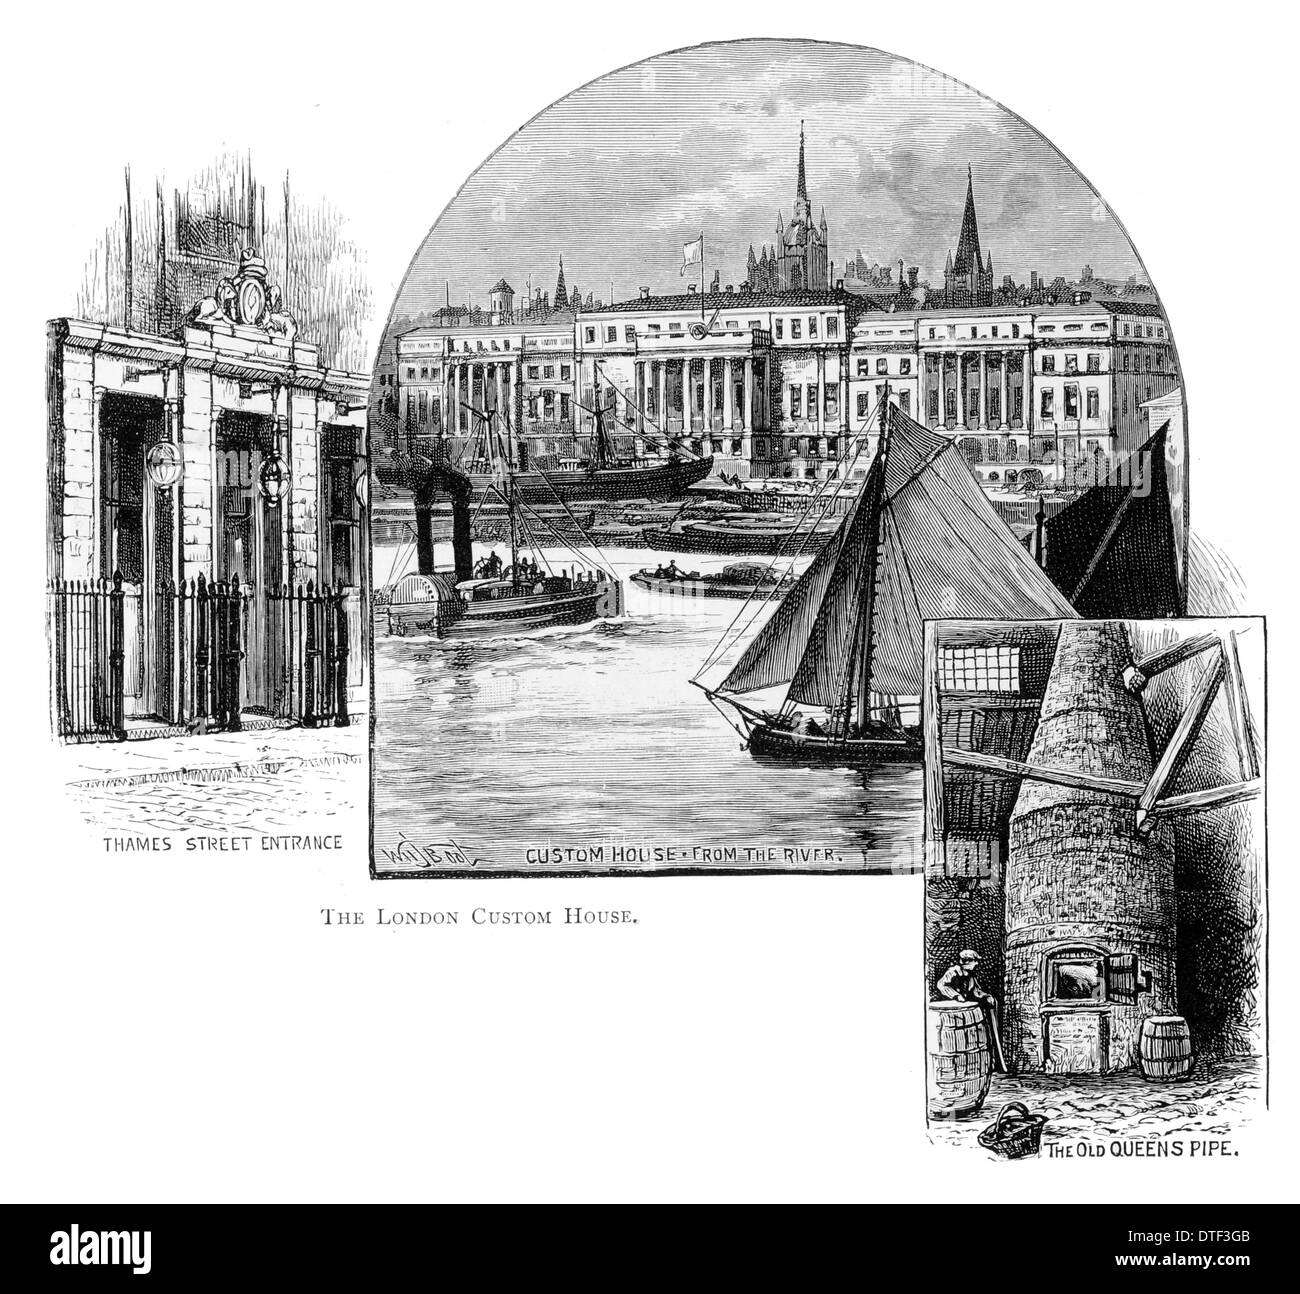 The London Custom House from the river Thames Street entrance. The Old Queens Pipe Circa 1890 - Stock Image